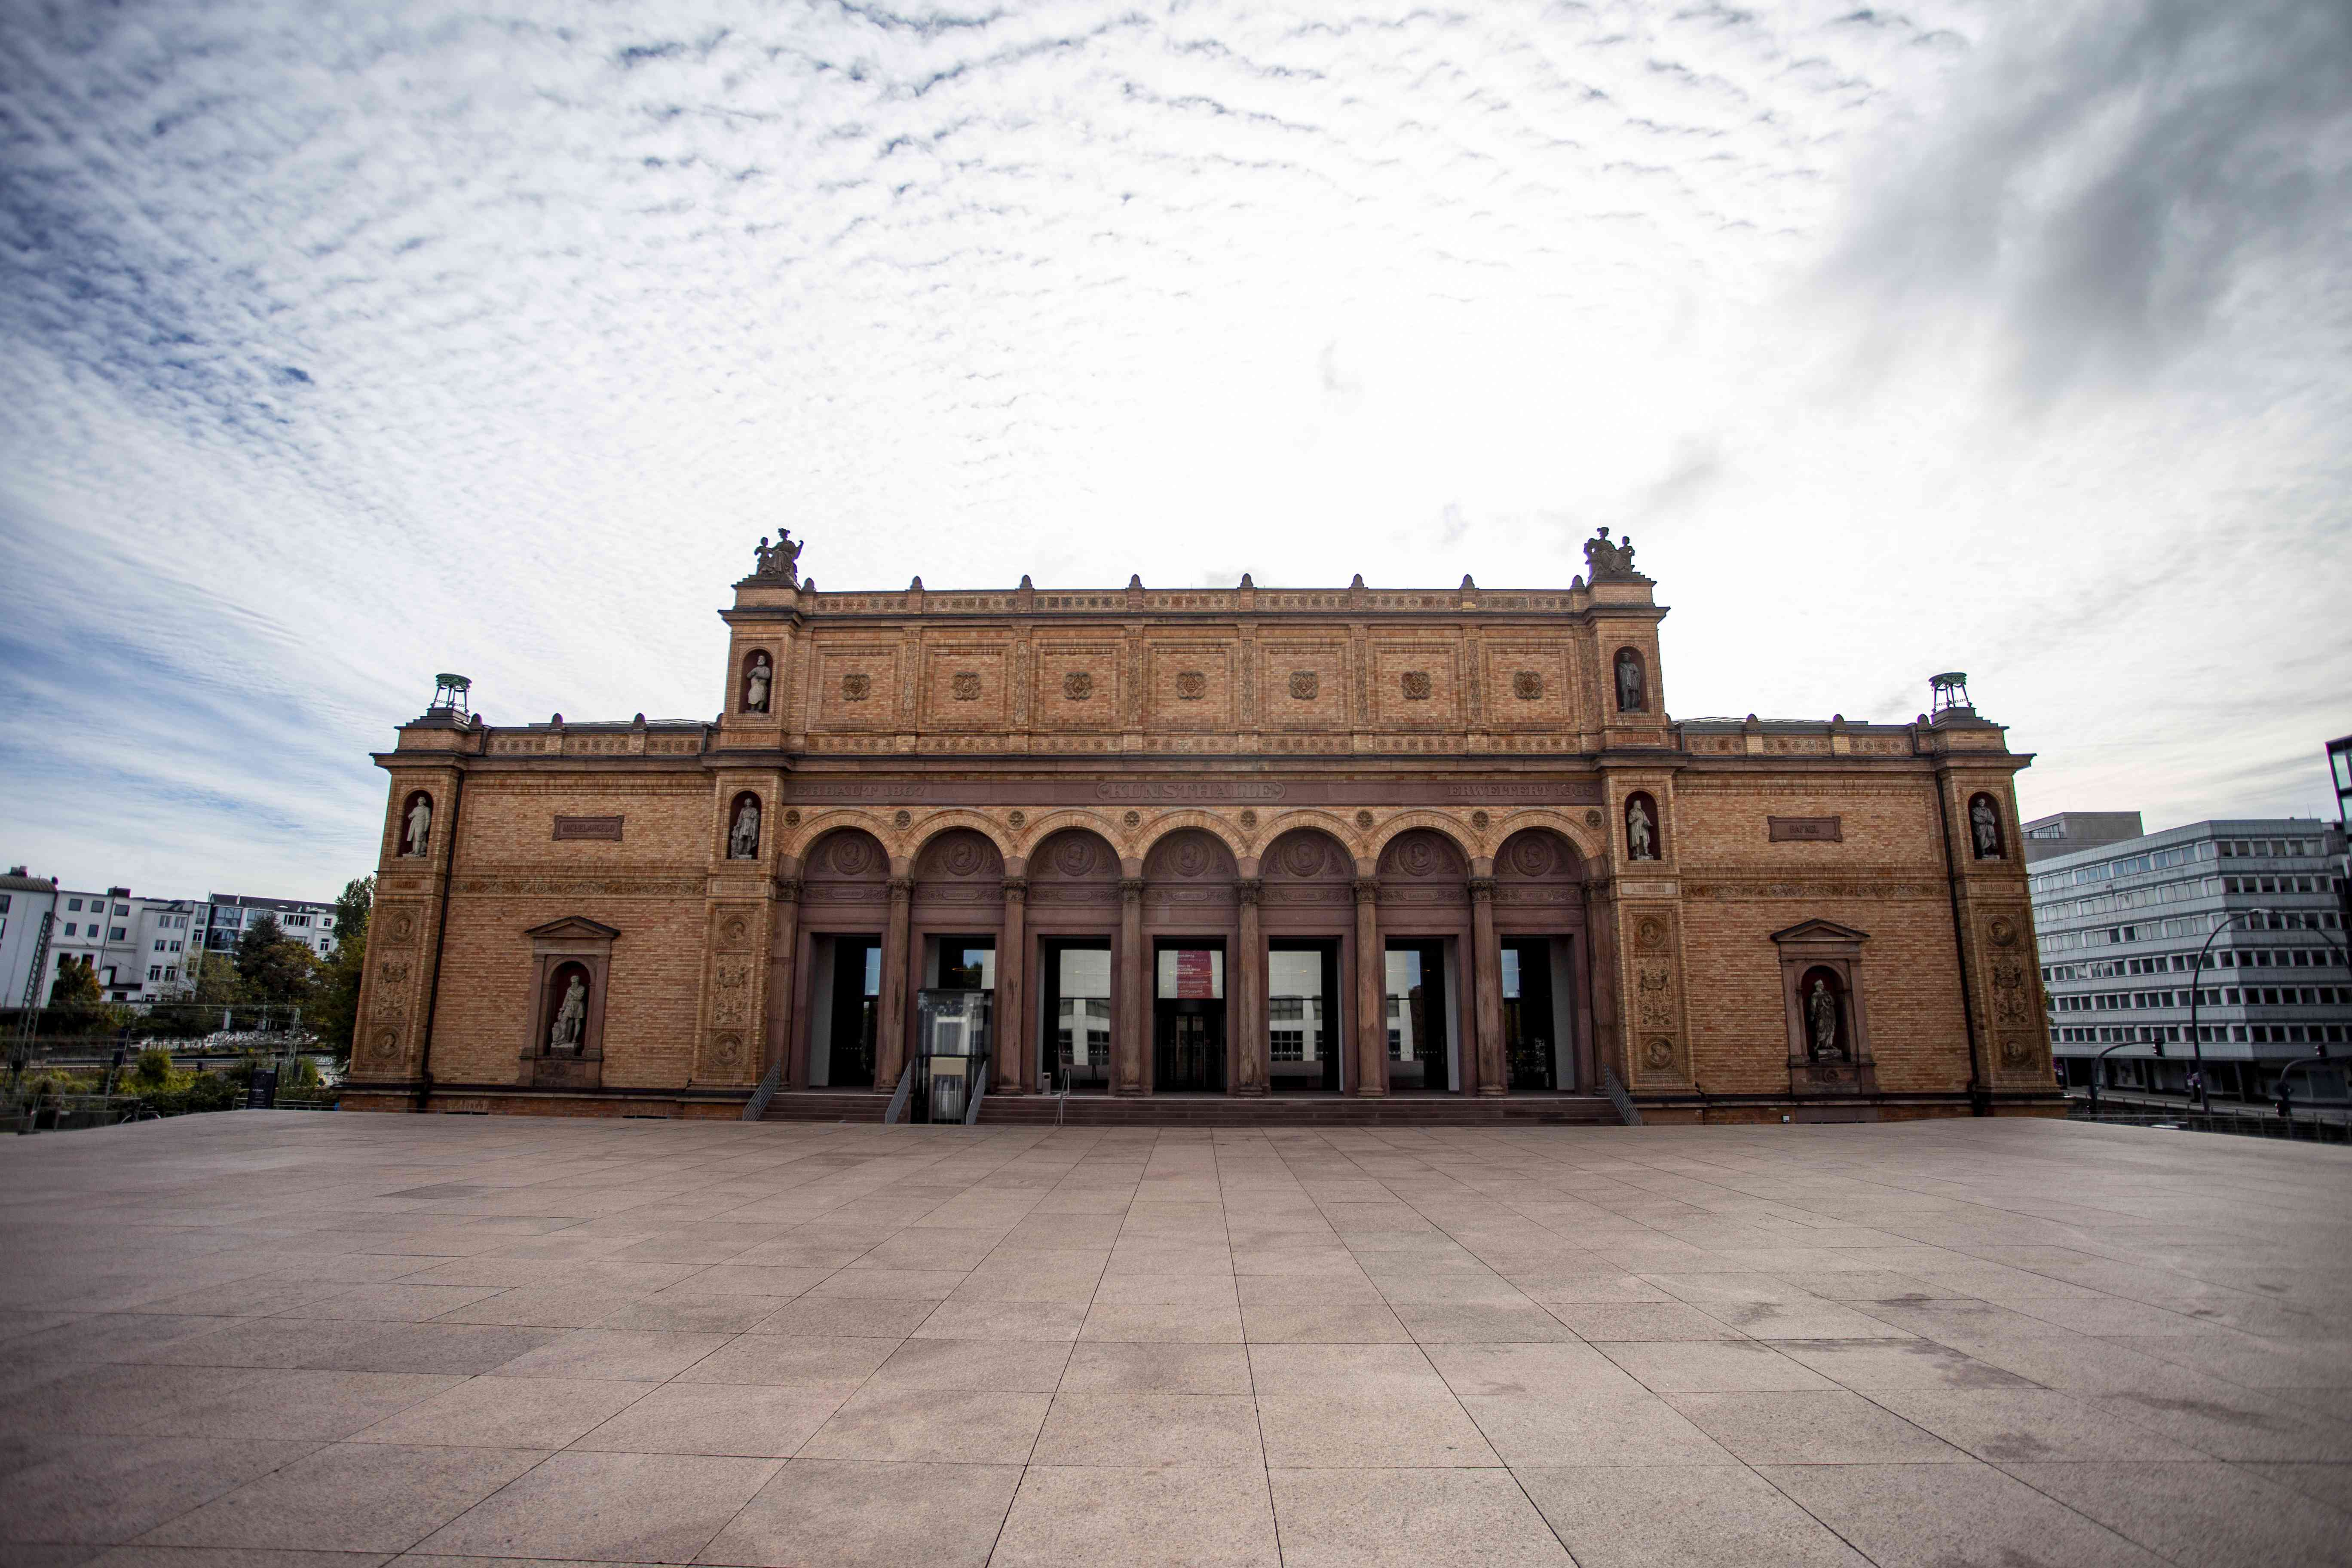 Exterior of the Kunsthalle